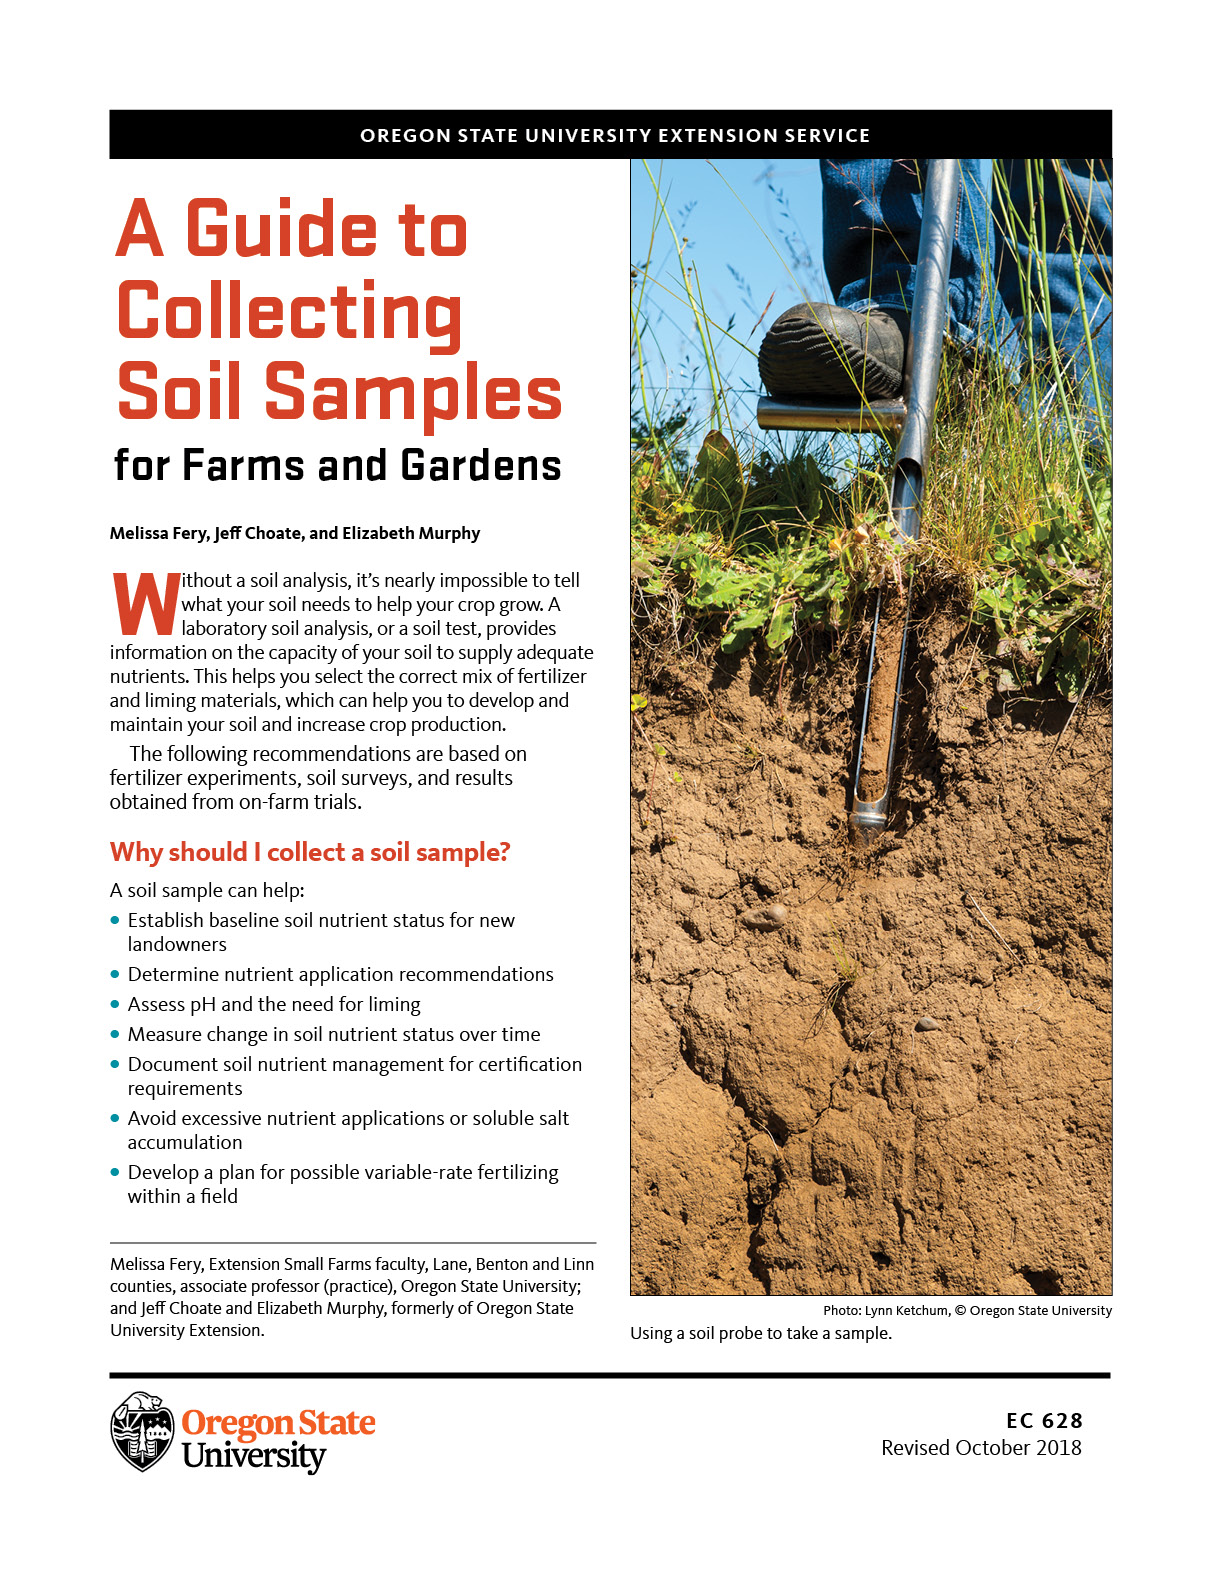 A Guide To Collecting Soil Samples For Farms And Gardens Osu